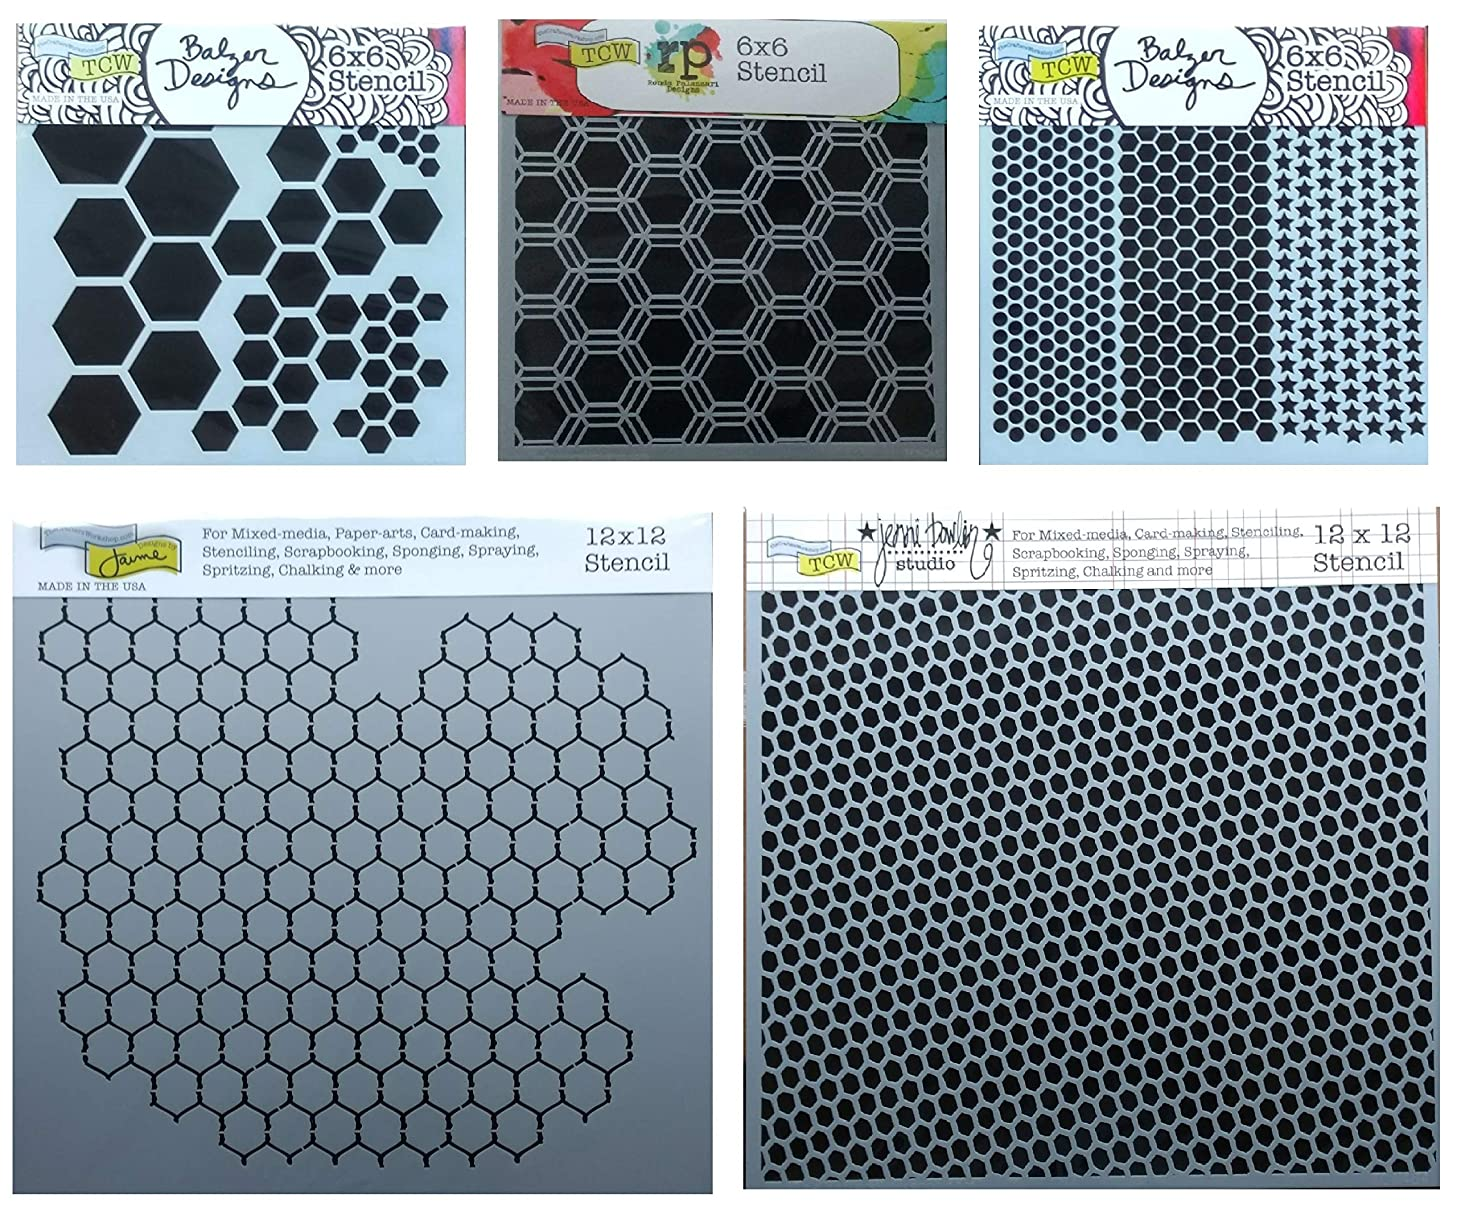 5 Mixed Media Stencils | Hexagon, Honeycomb, Chicken Wire, Fish Net, Punchinella Stencil Set | Templates for Arts, Card Making, Journaling, Scrapbooking | by Crafters Workshop